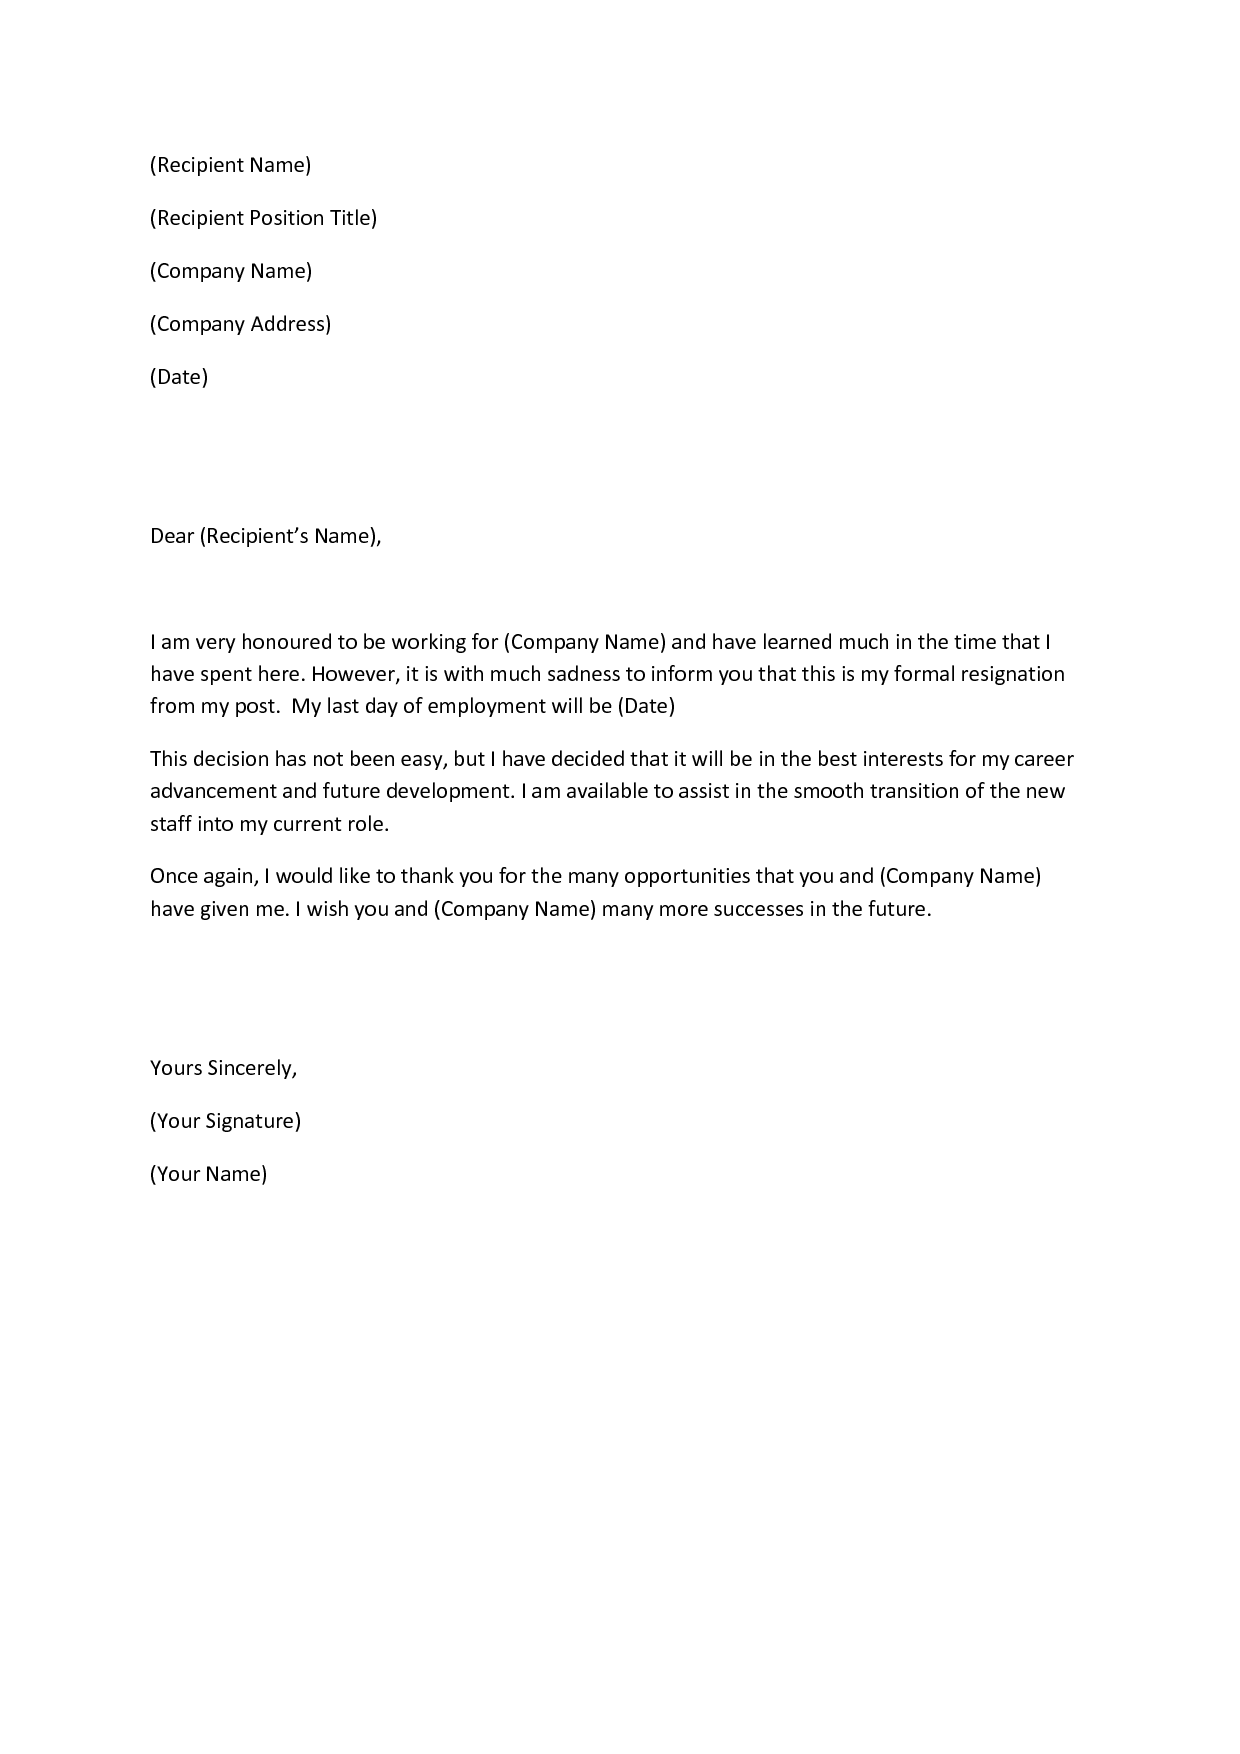 Resignation Letter Template it controller cover letter – Write a Resign Letter